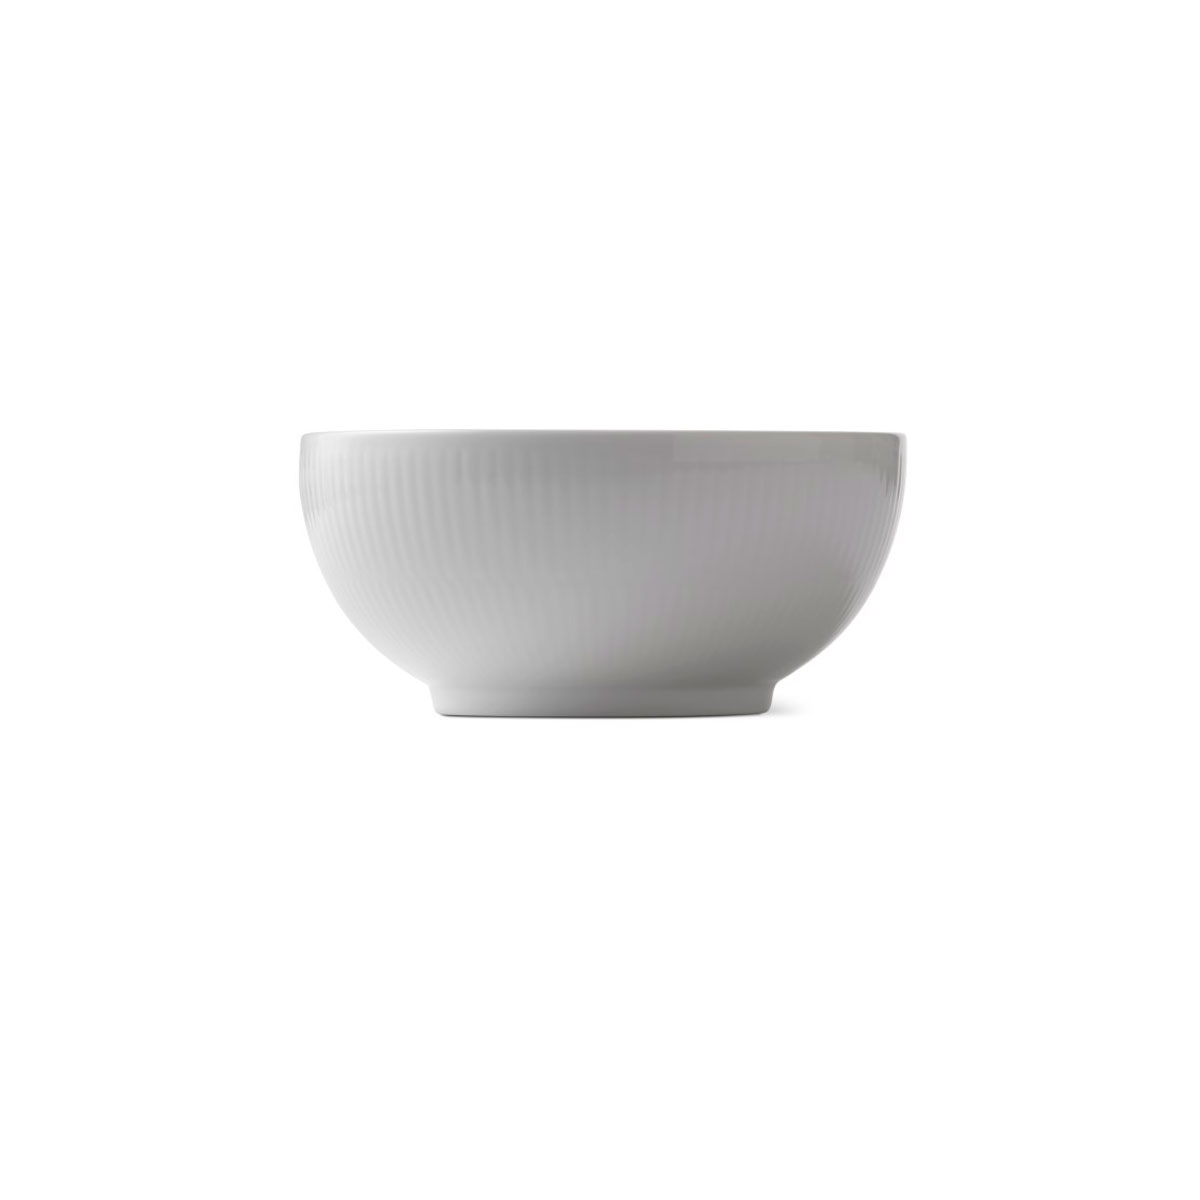 Royal Copenhagen, White Fluted Bowl 1.5 Pint